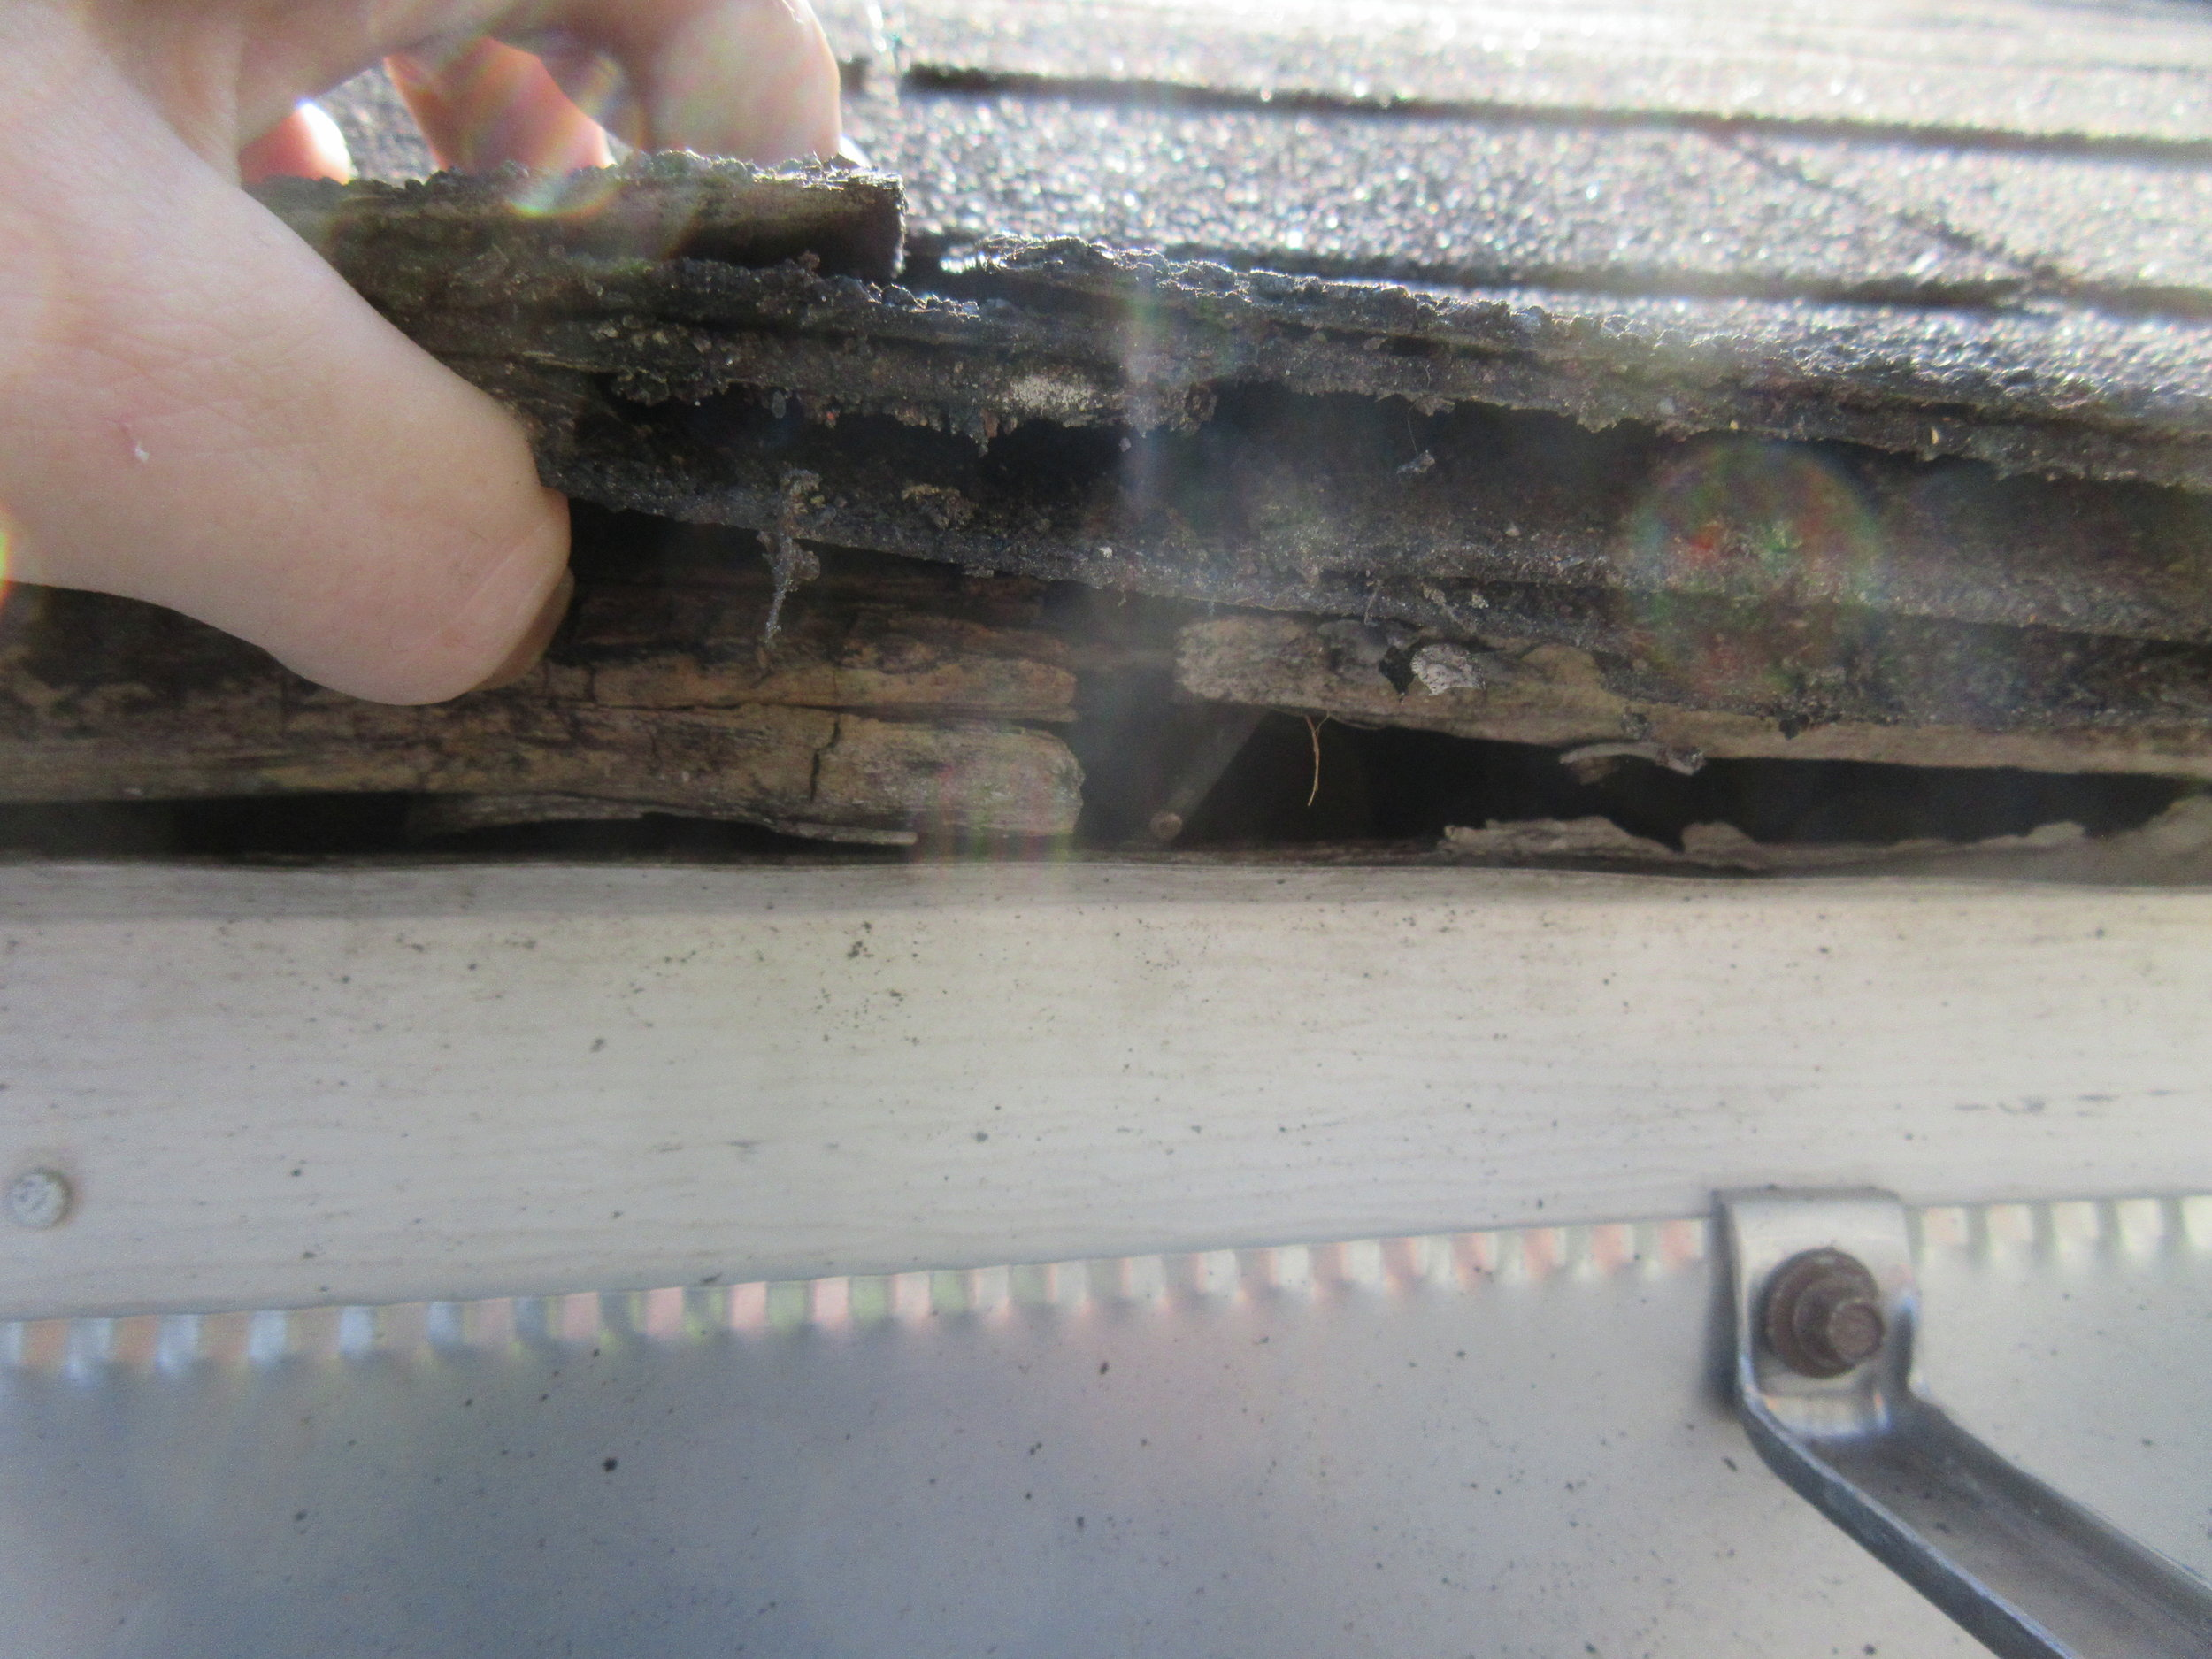 Roof covering did not extend enough past roof line allowing water to wick into roof decking. Because of this,there is moisture damage ( wood rot ) at roof decking. See interior picture for extent and severity.